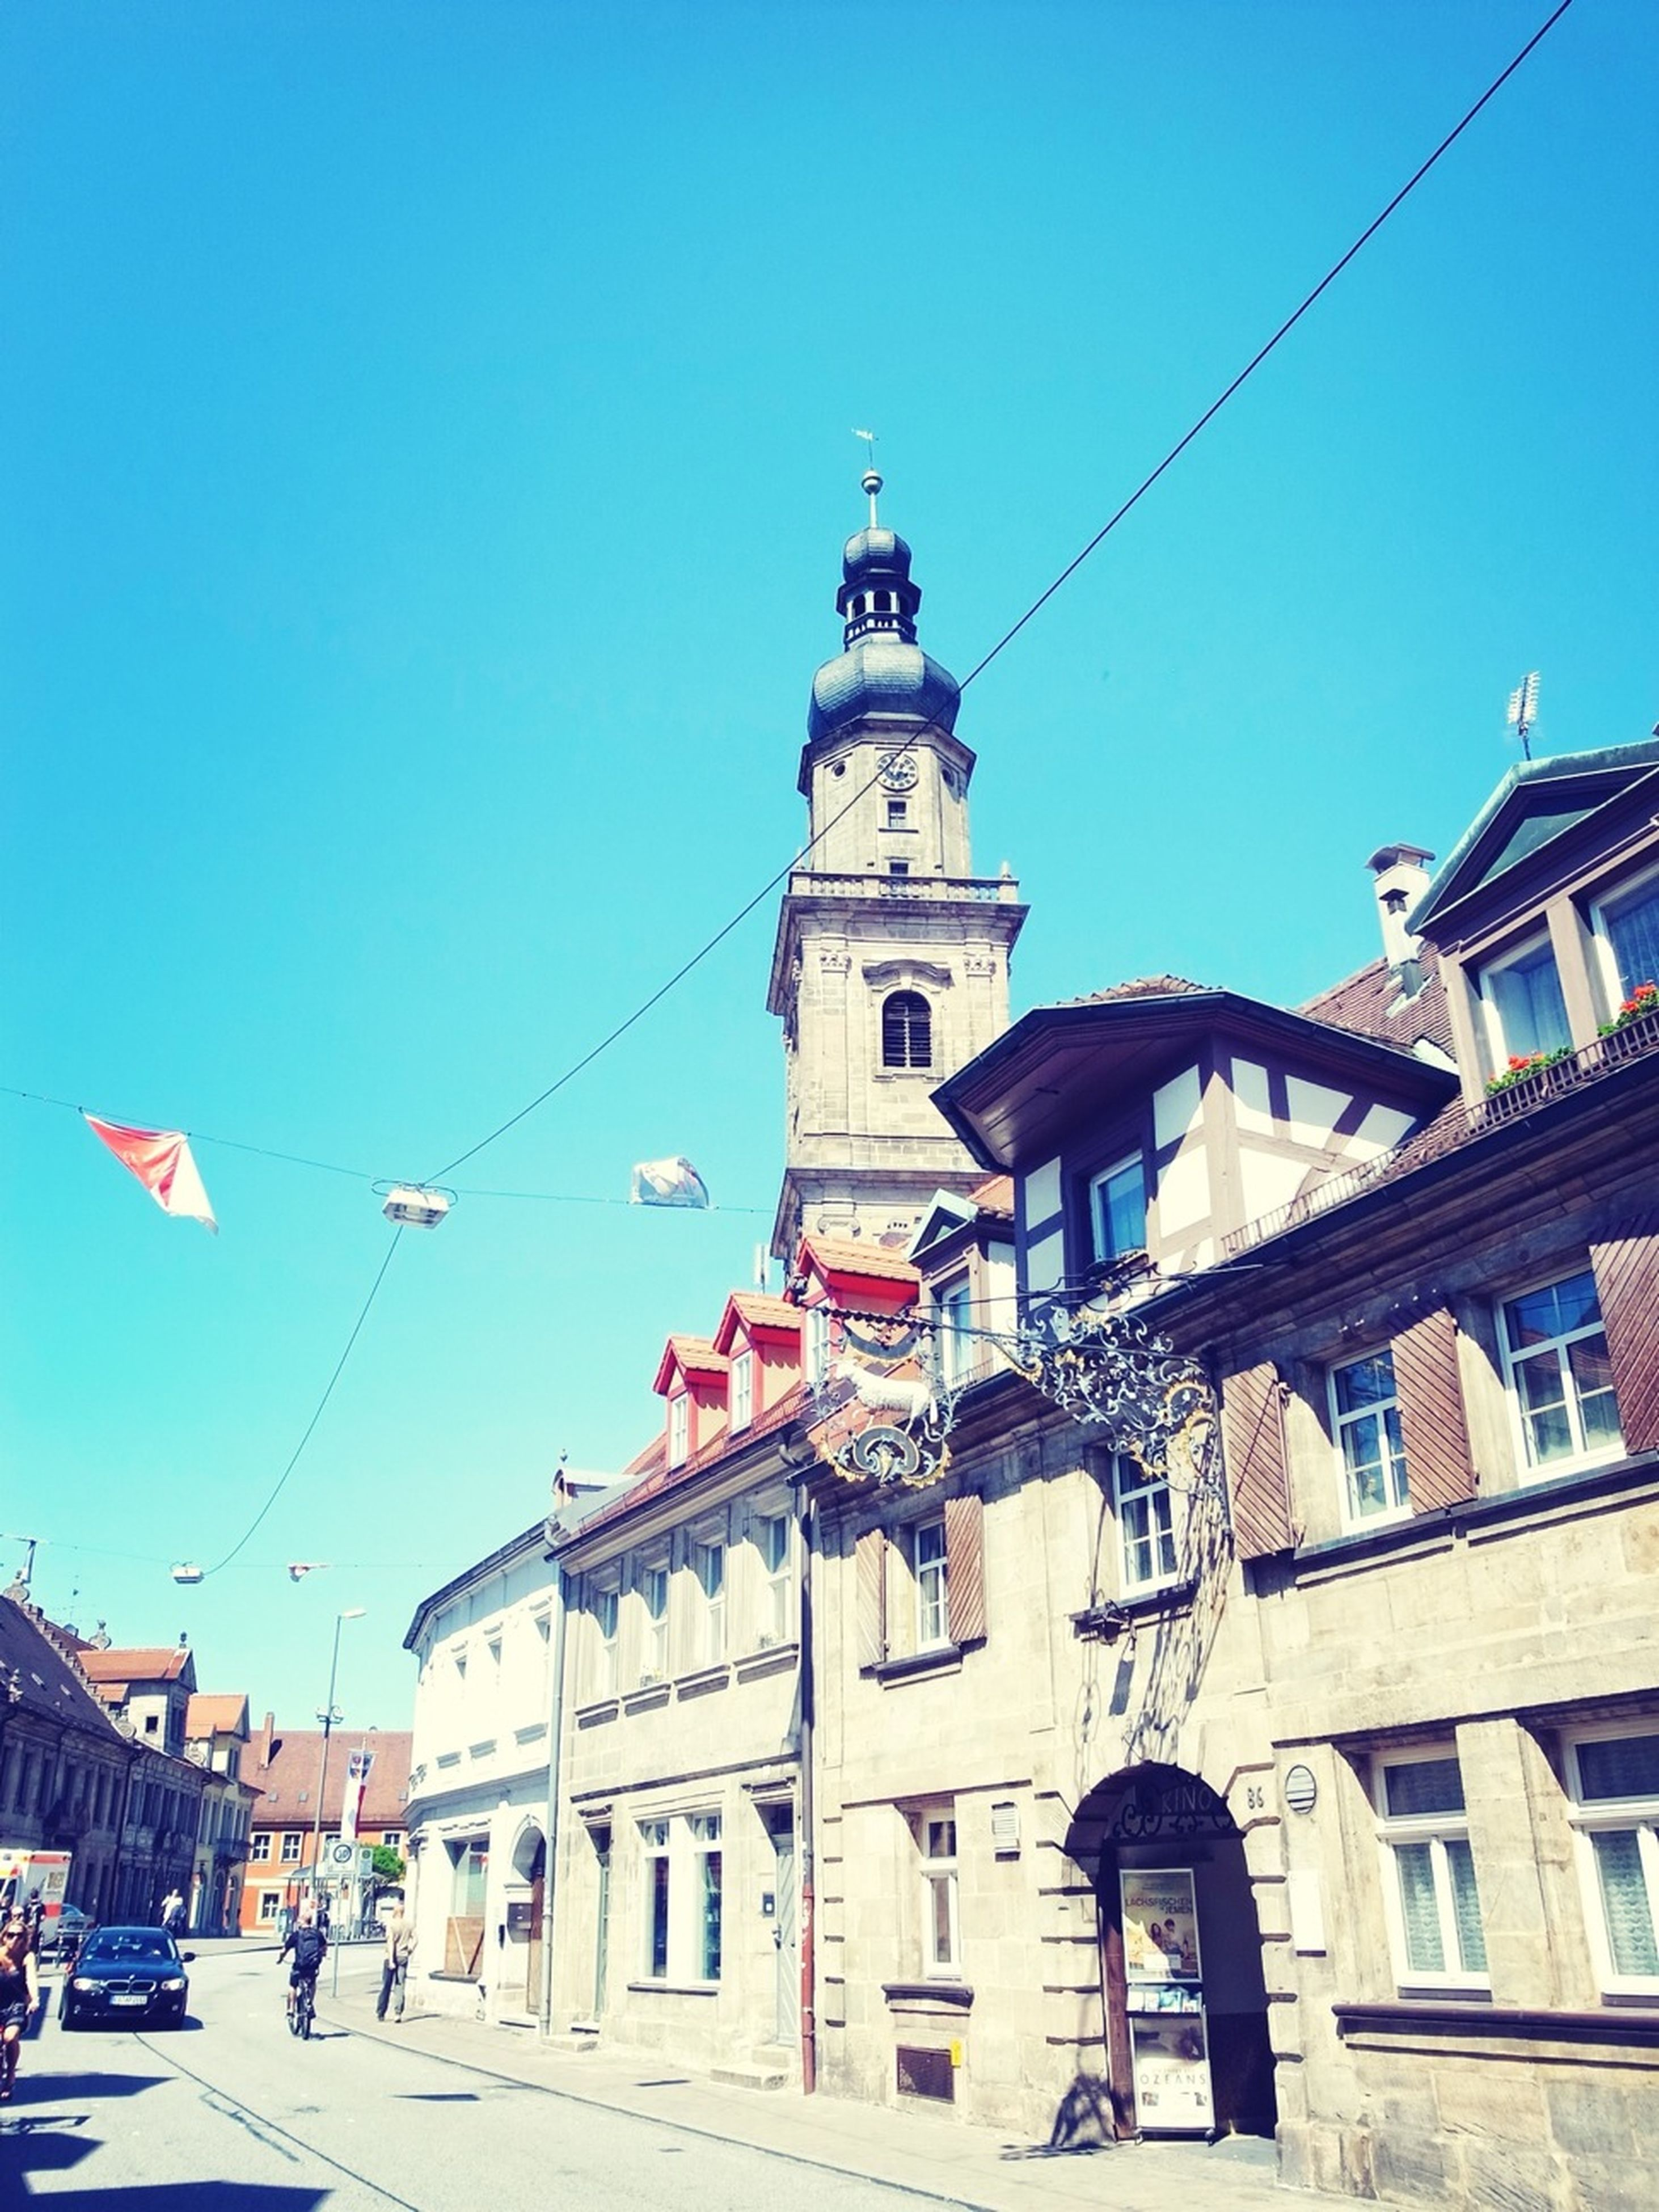 building exterior, architecture, built structure, clear sky, blue, low angle view, city, street, street light, residential building, day, sunlight, building, residential structure, religion, church, outdoors, window, old town, facade